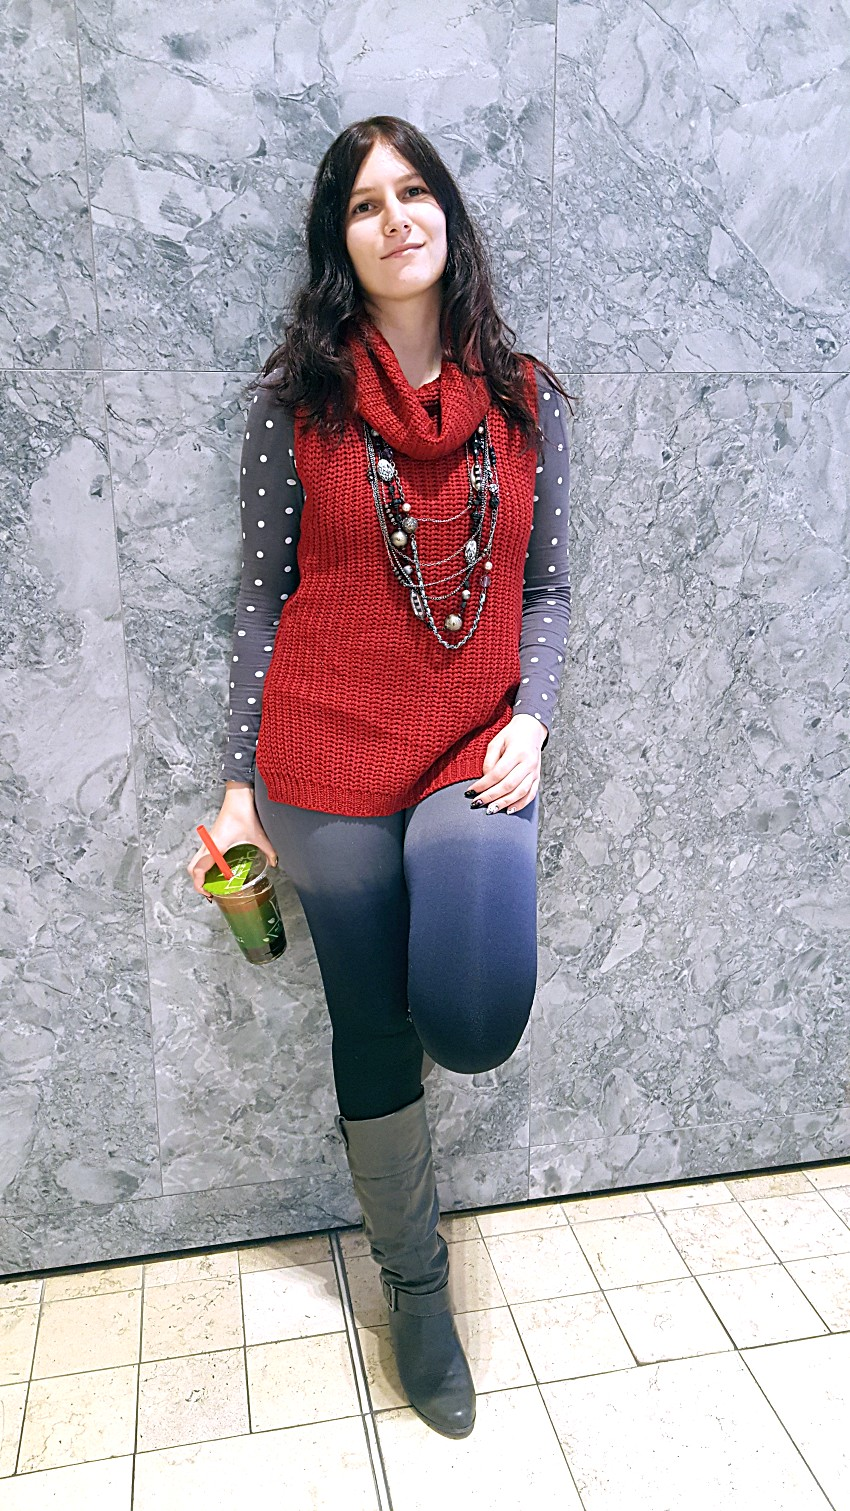 Polar Bear Style Red Sweater Tunic Grey Ombre Leggings Polka Dot Top Layered Necklaces Grey Boots